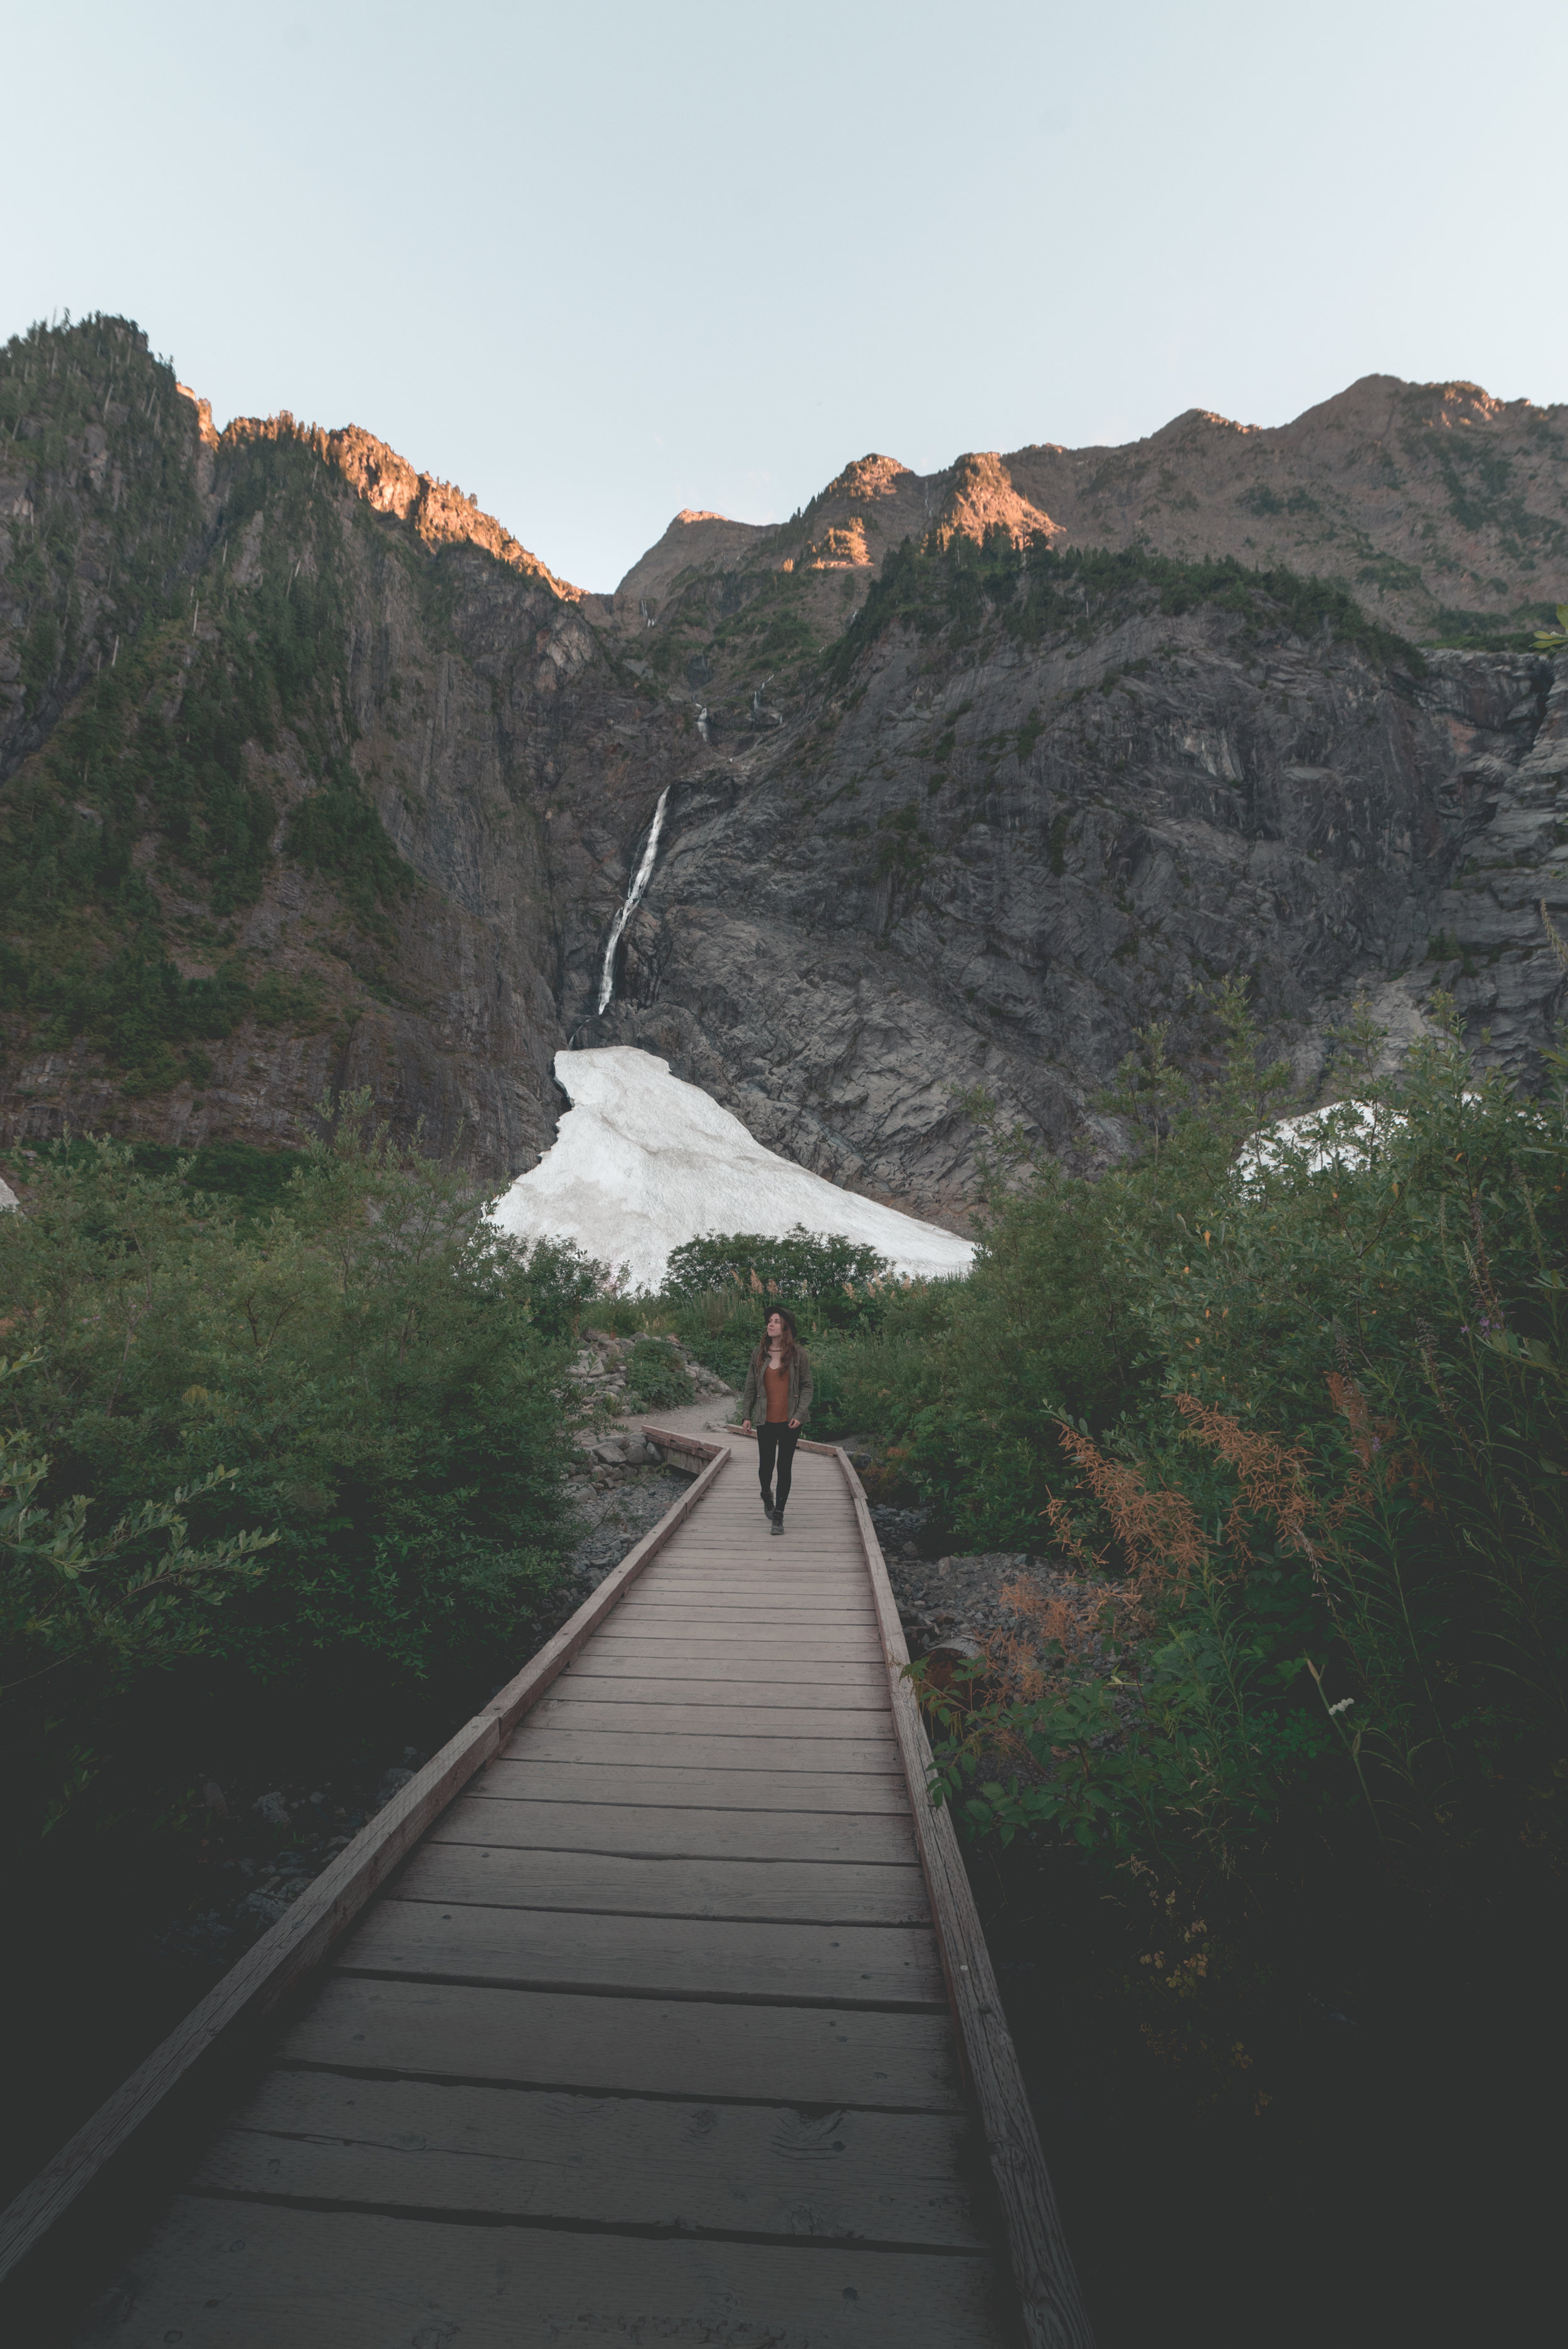 @bayleyjunes walking down the boardwalk at the ice caves in Washington. ISO 1000, f/8, 1/100